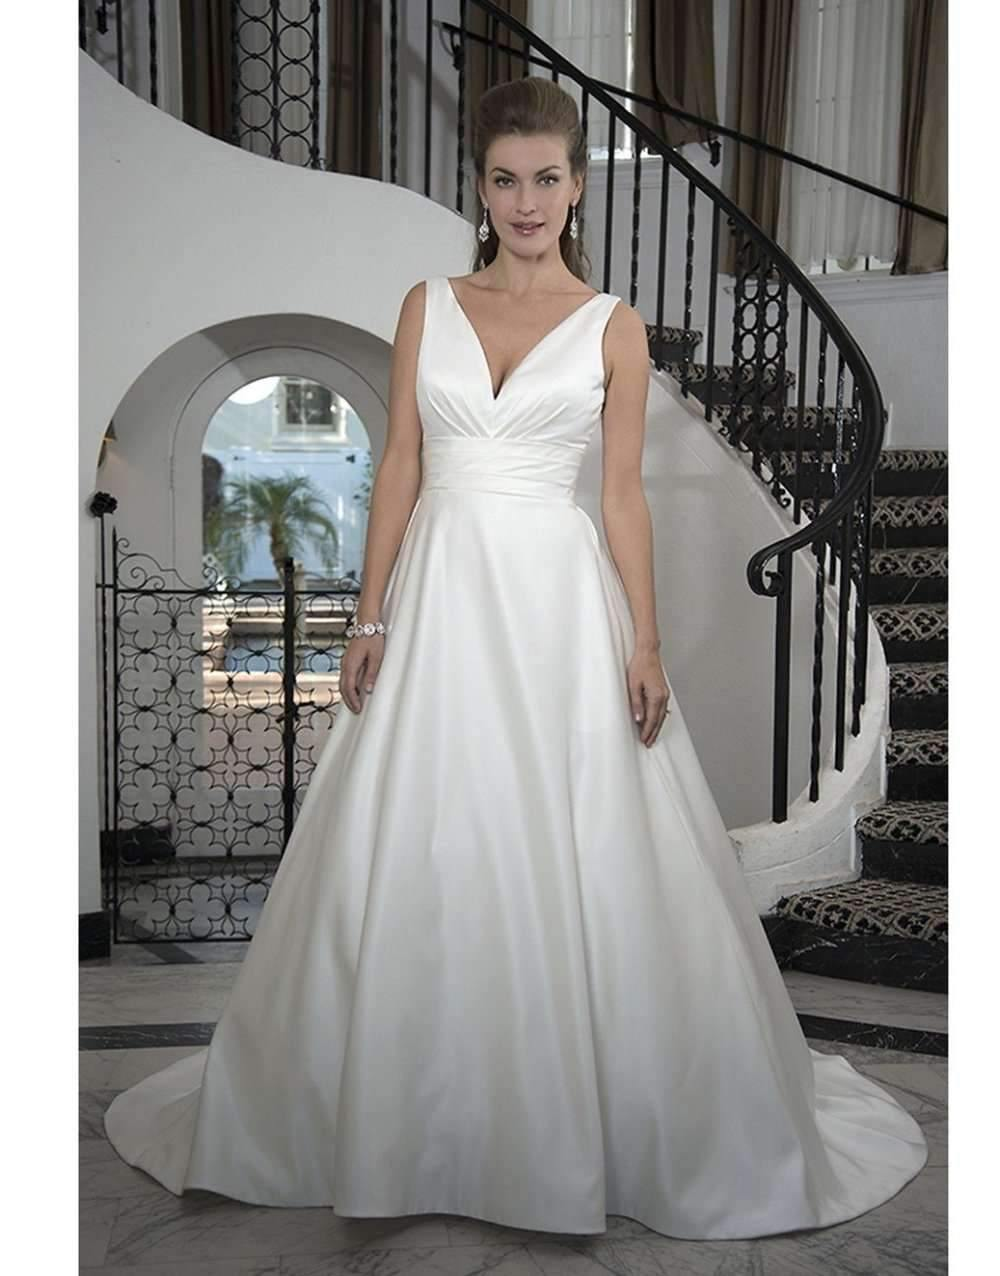 VENUS BRIDAL - Ada - Adore Bridal and Occasion Wear